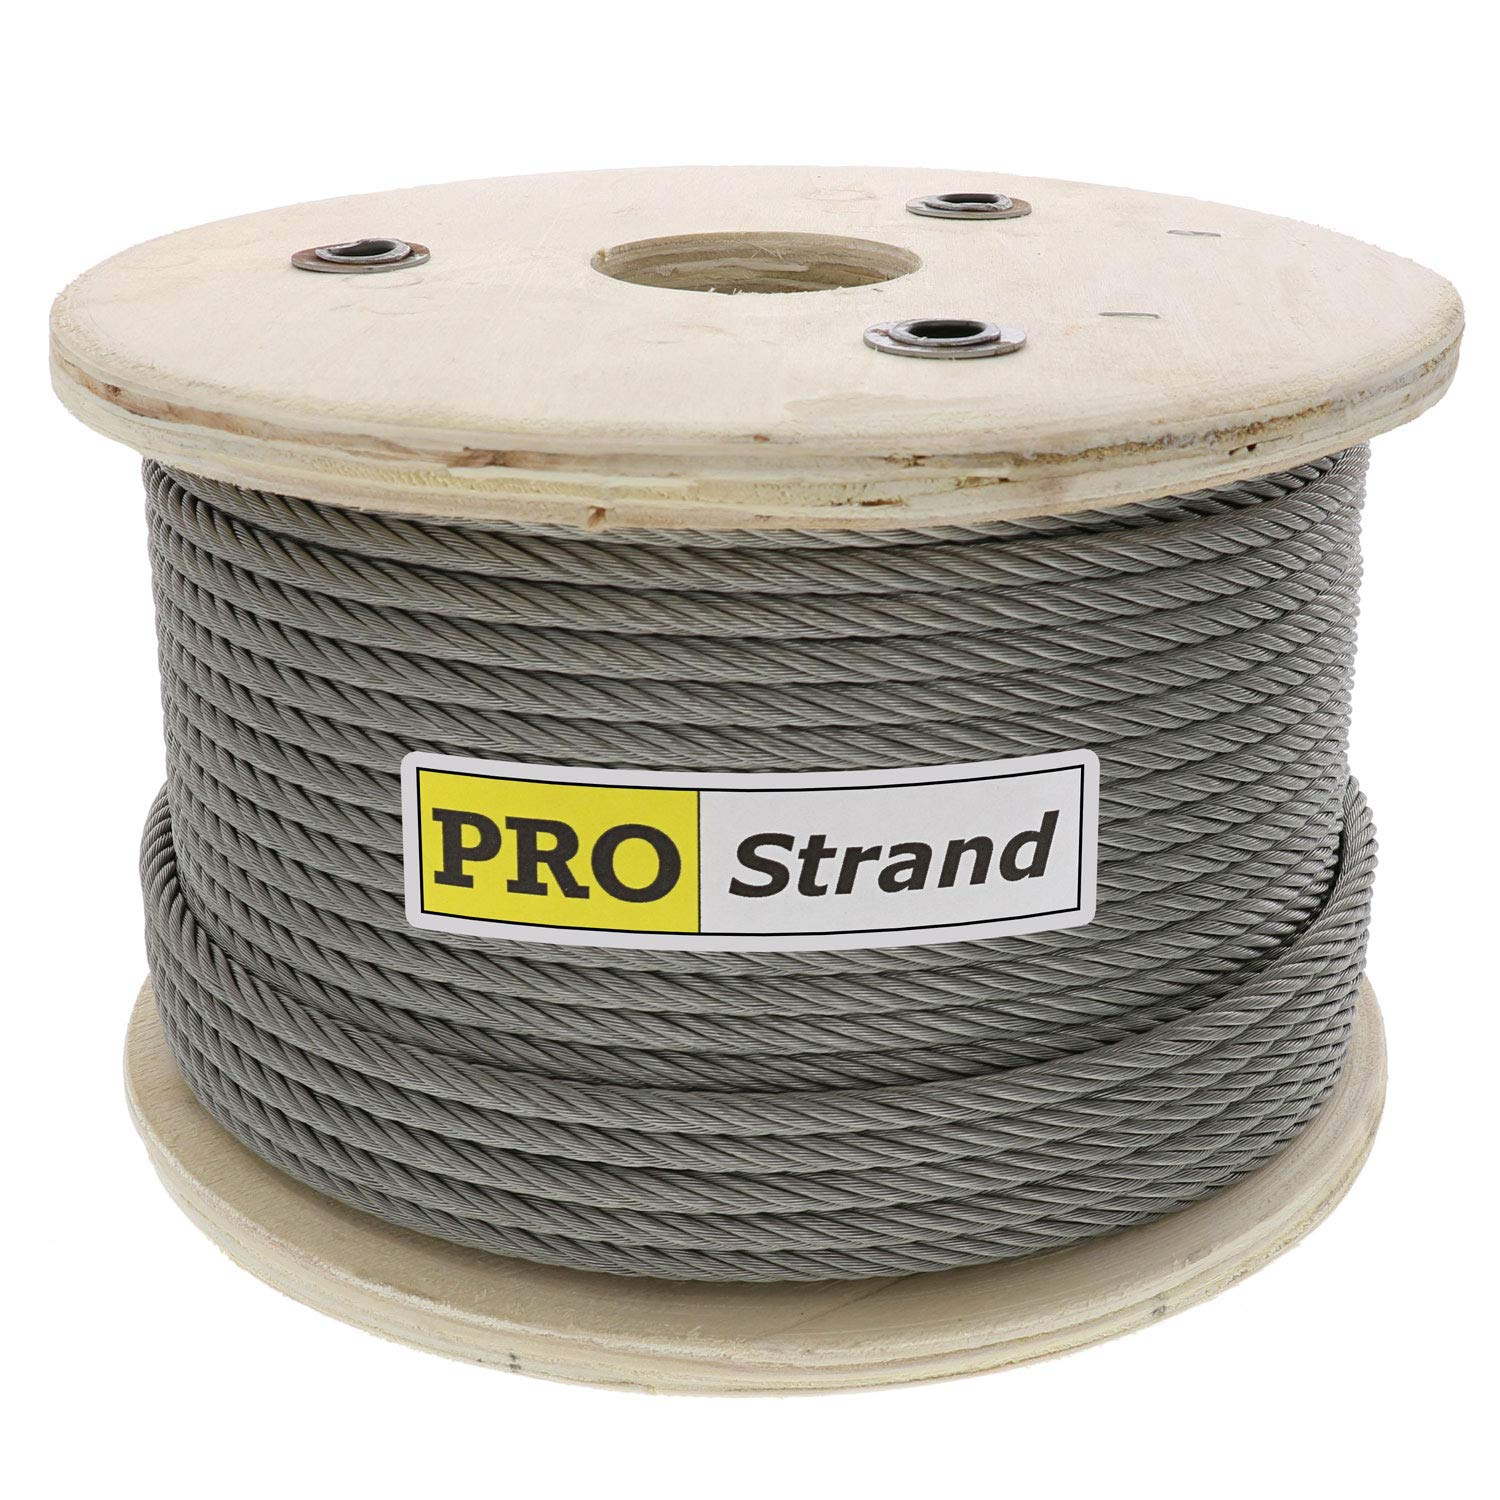 Pro Strand 1/16'' X 1000', 7x7, Hot Dip Galvanized Cable Reel